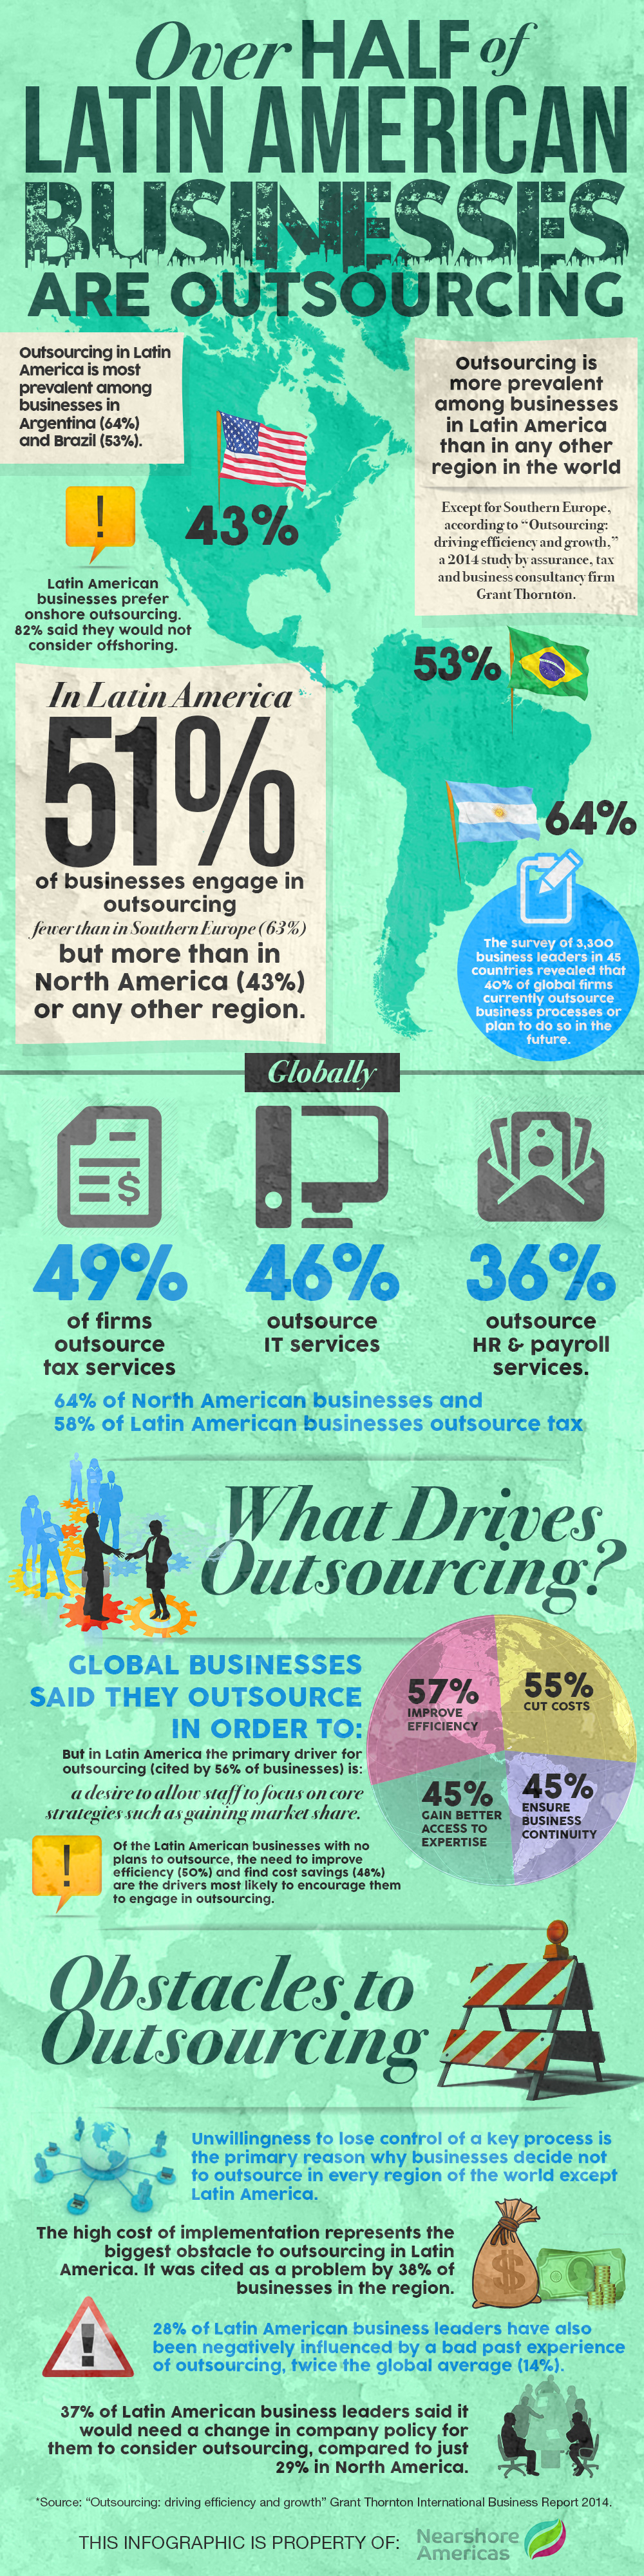 infographic 1000x4000 Over Half of Latin American Businesses Are Outsourcing4 Infographic: Understanding Latin Americas Appetite for Outsourcing